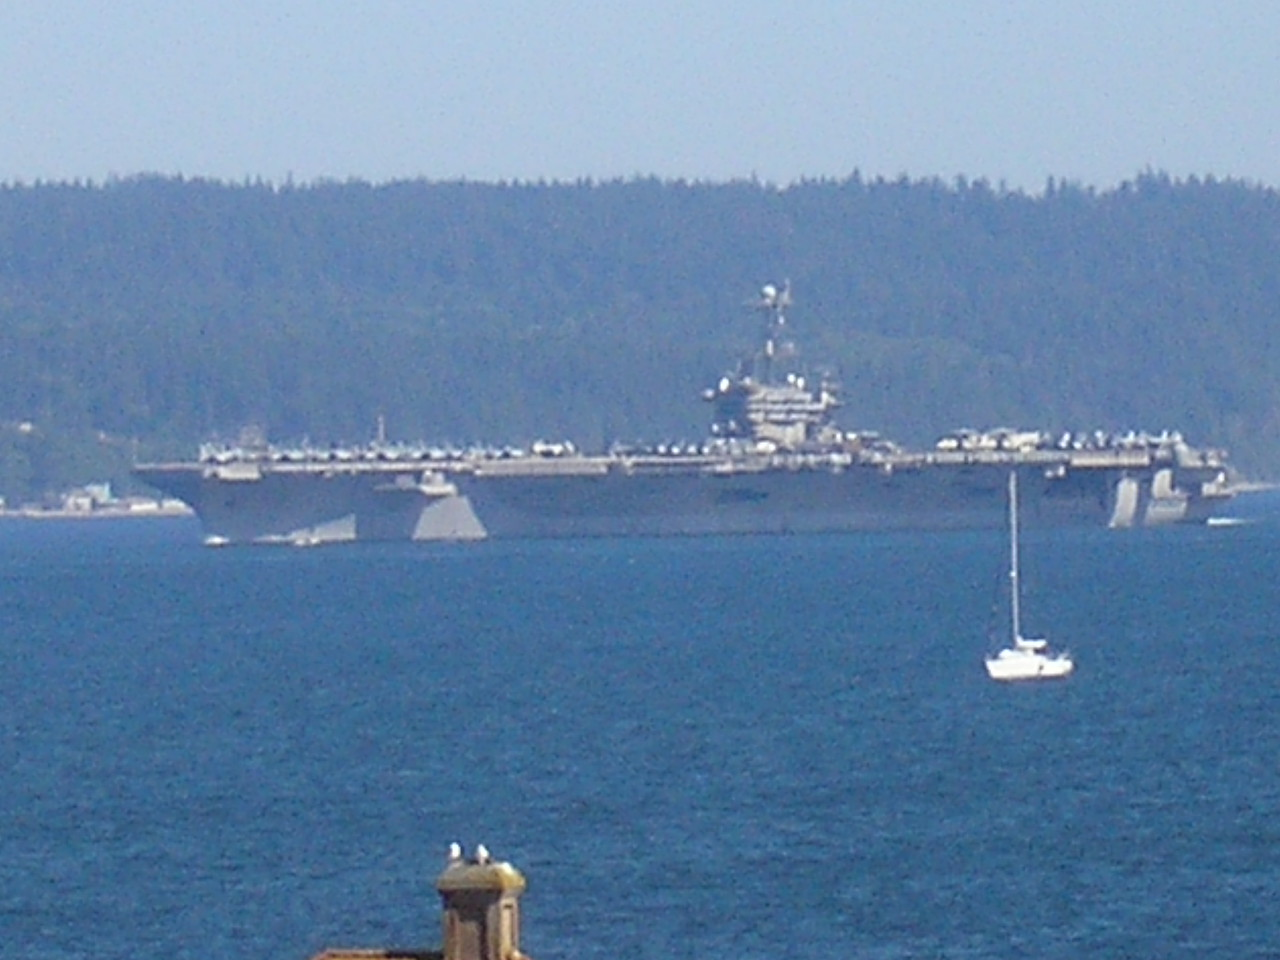 We saw aircraft carriers leaving Bremerton.